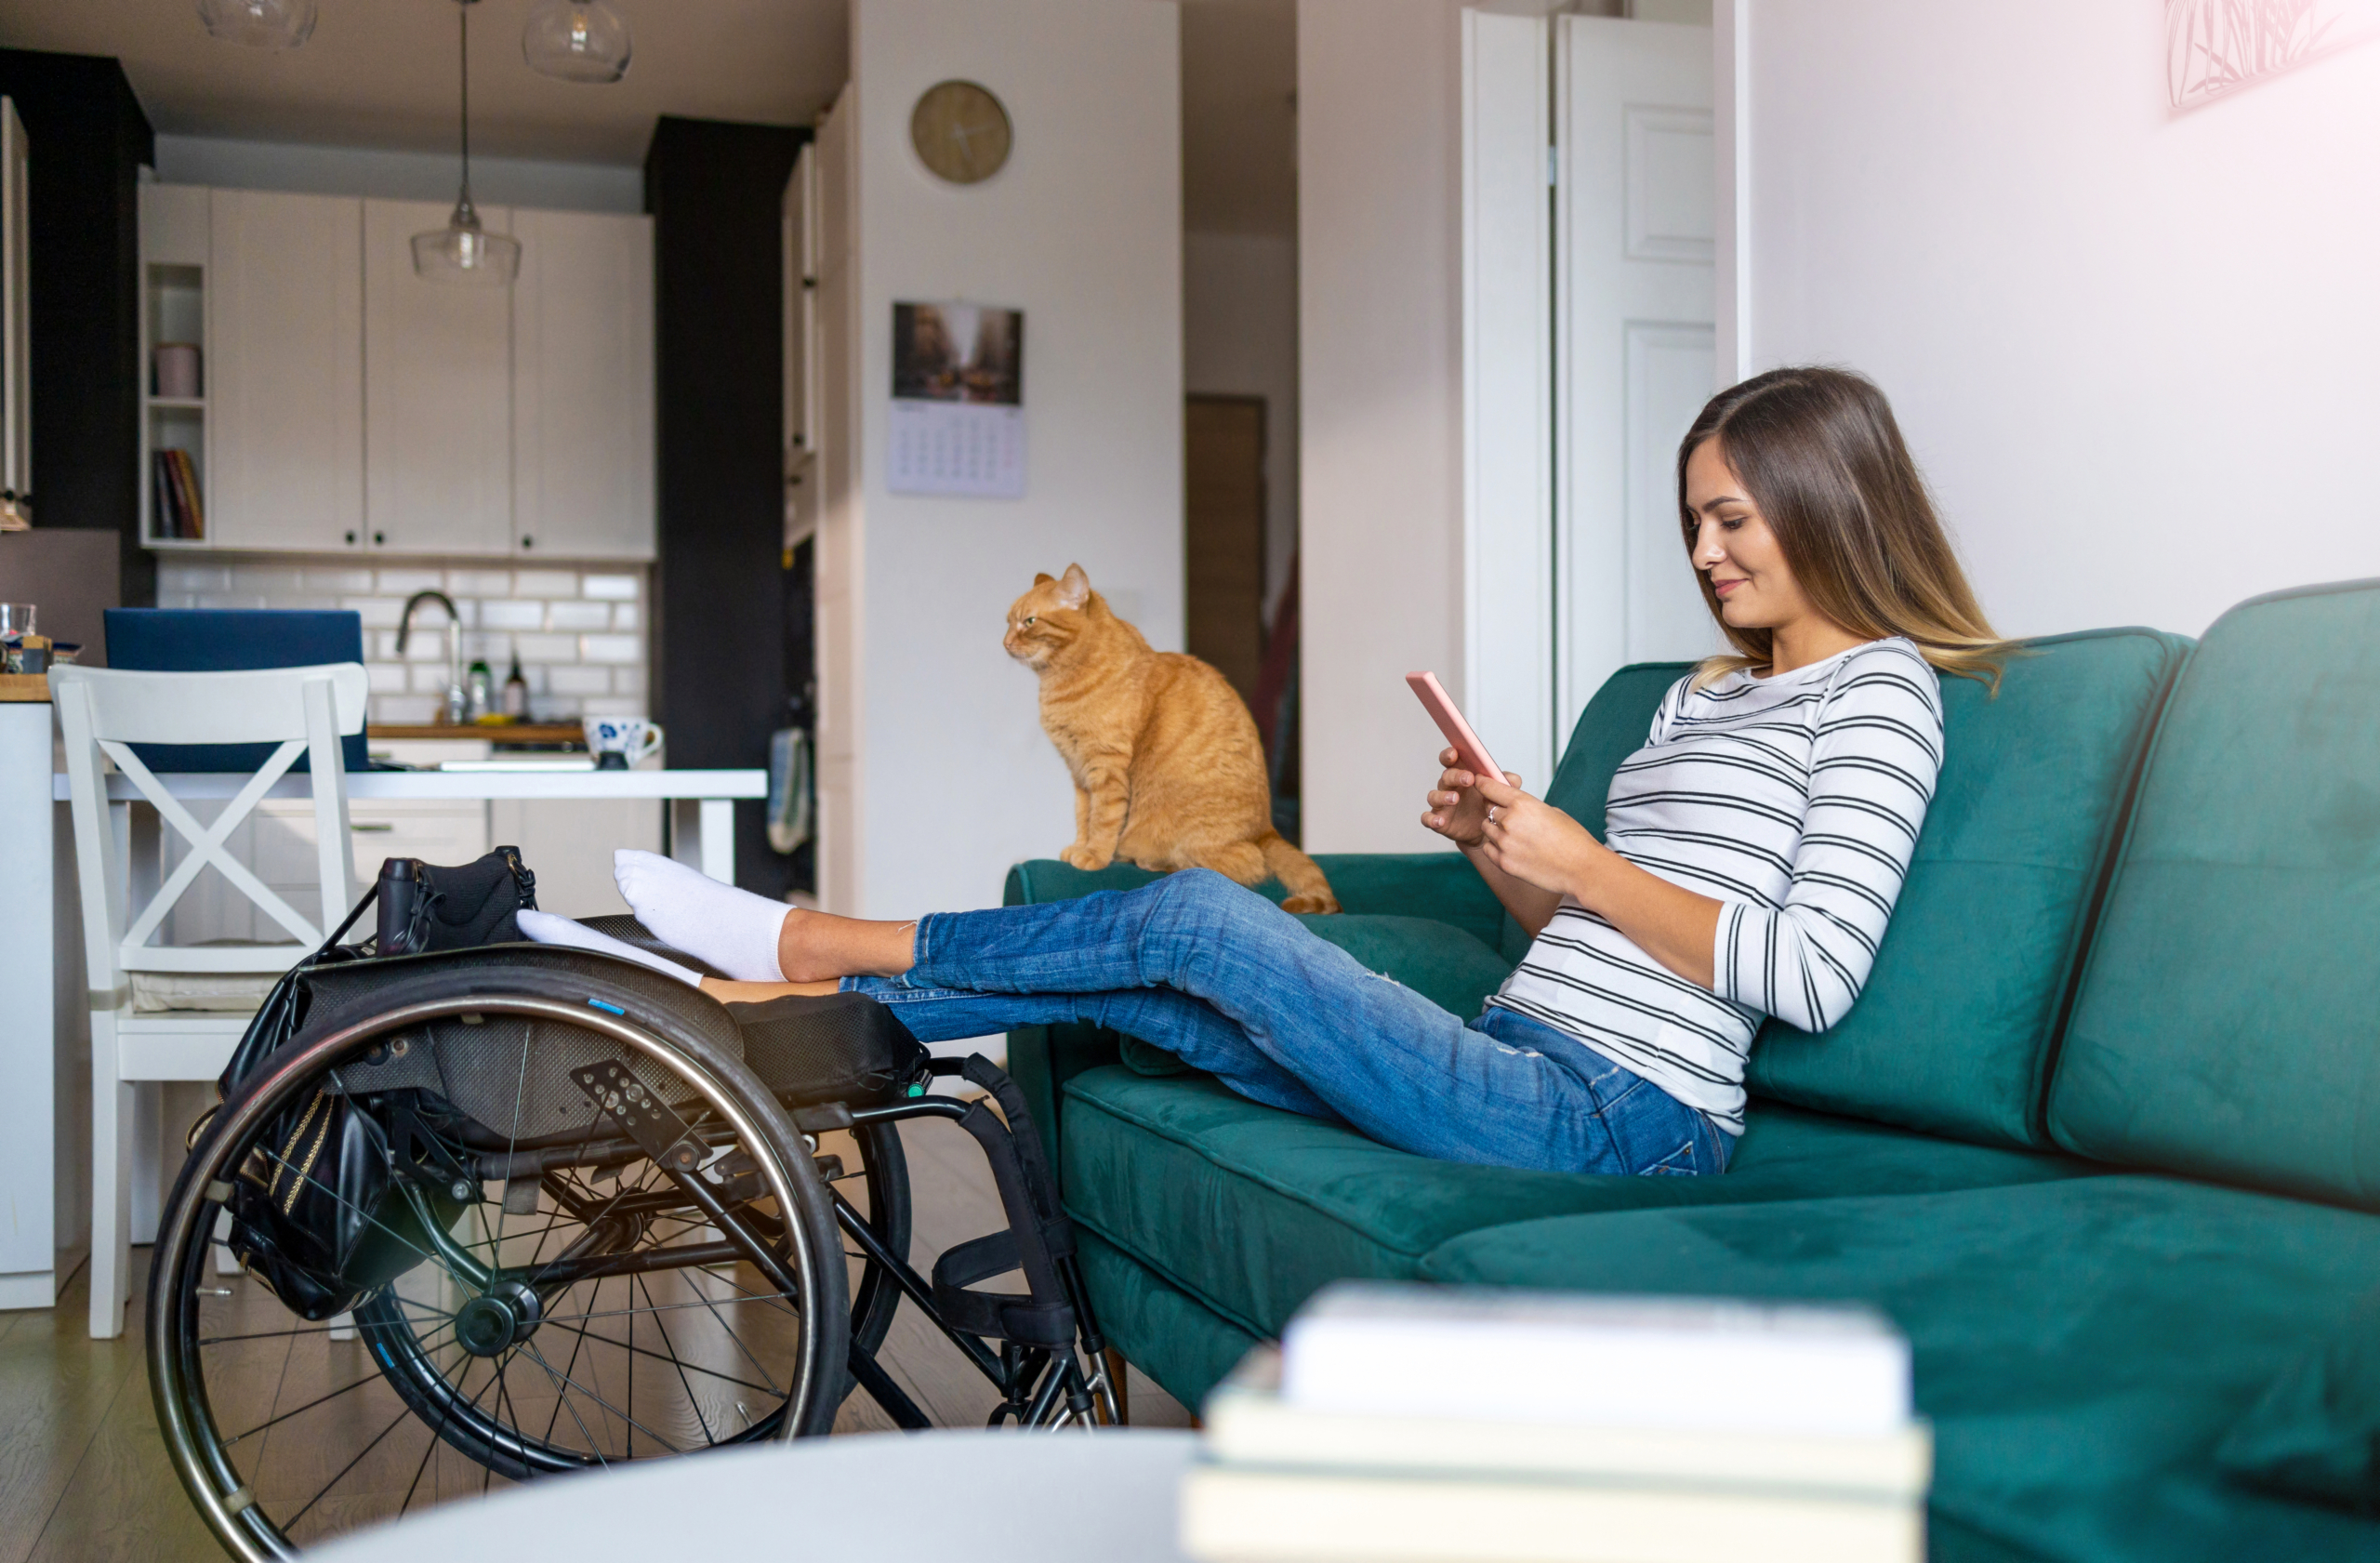 Young lady sits on a sofa looking at her phone. A cat sits on the armrest. Her legs are outstretched resting on a wheelchair.